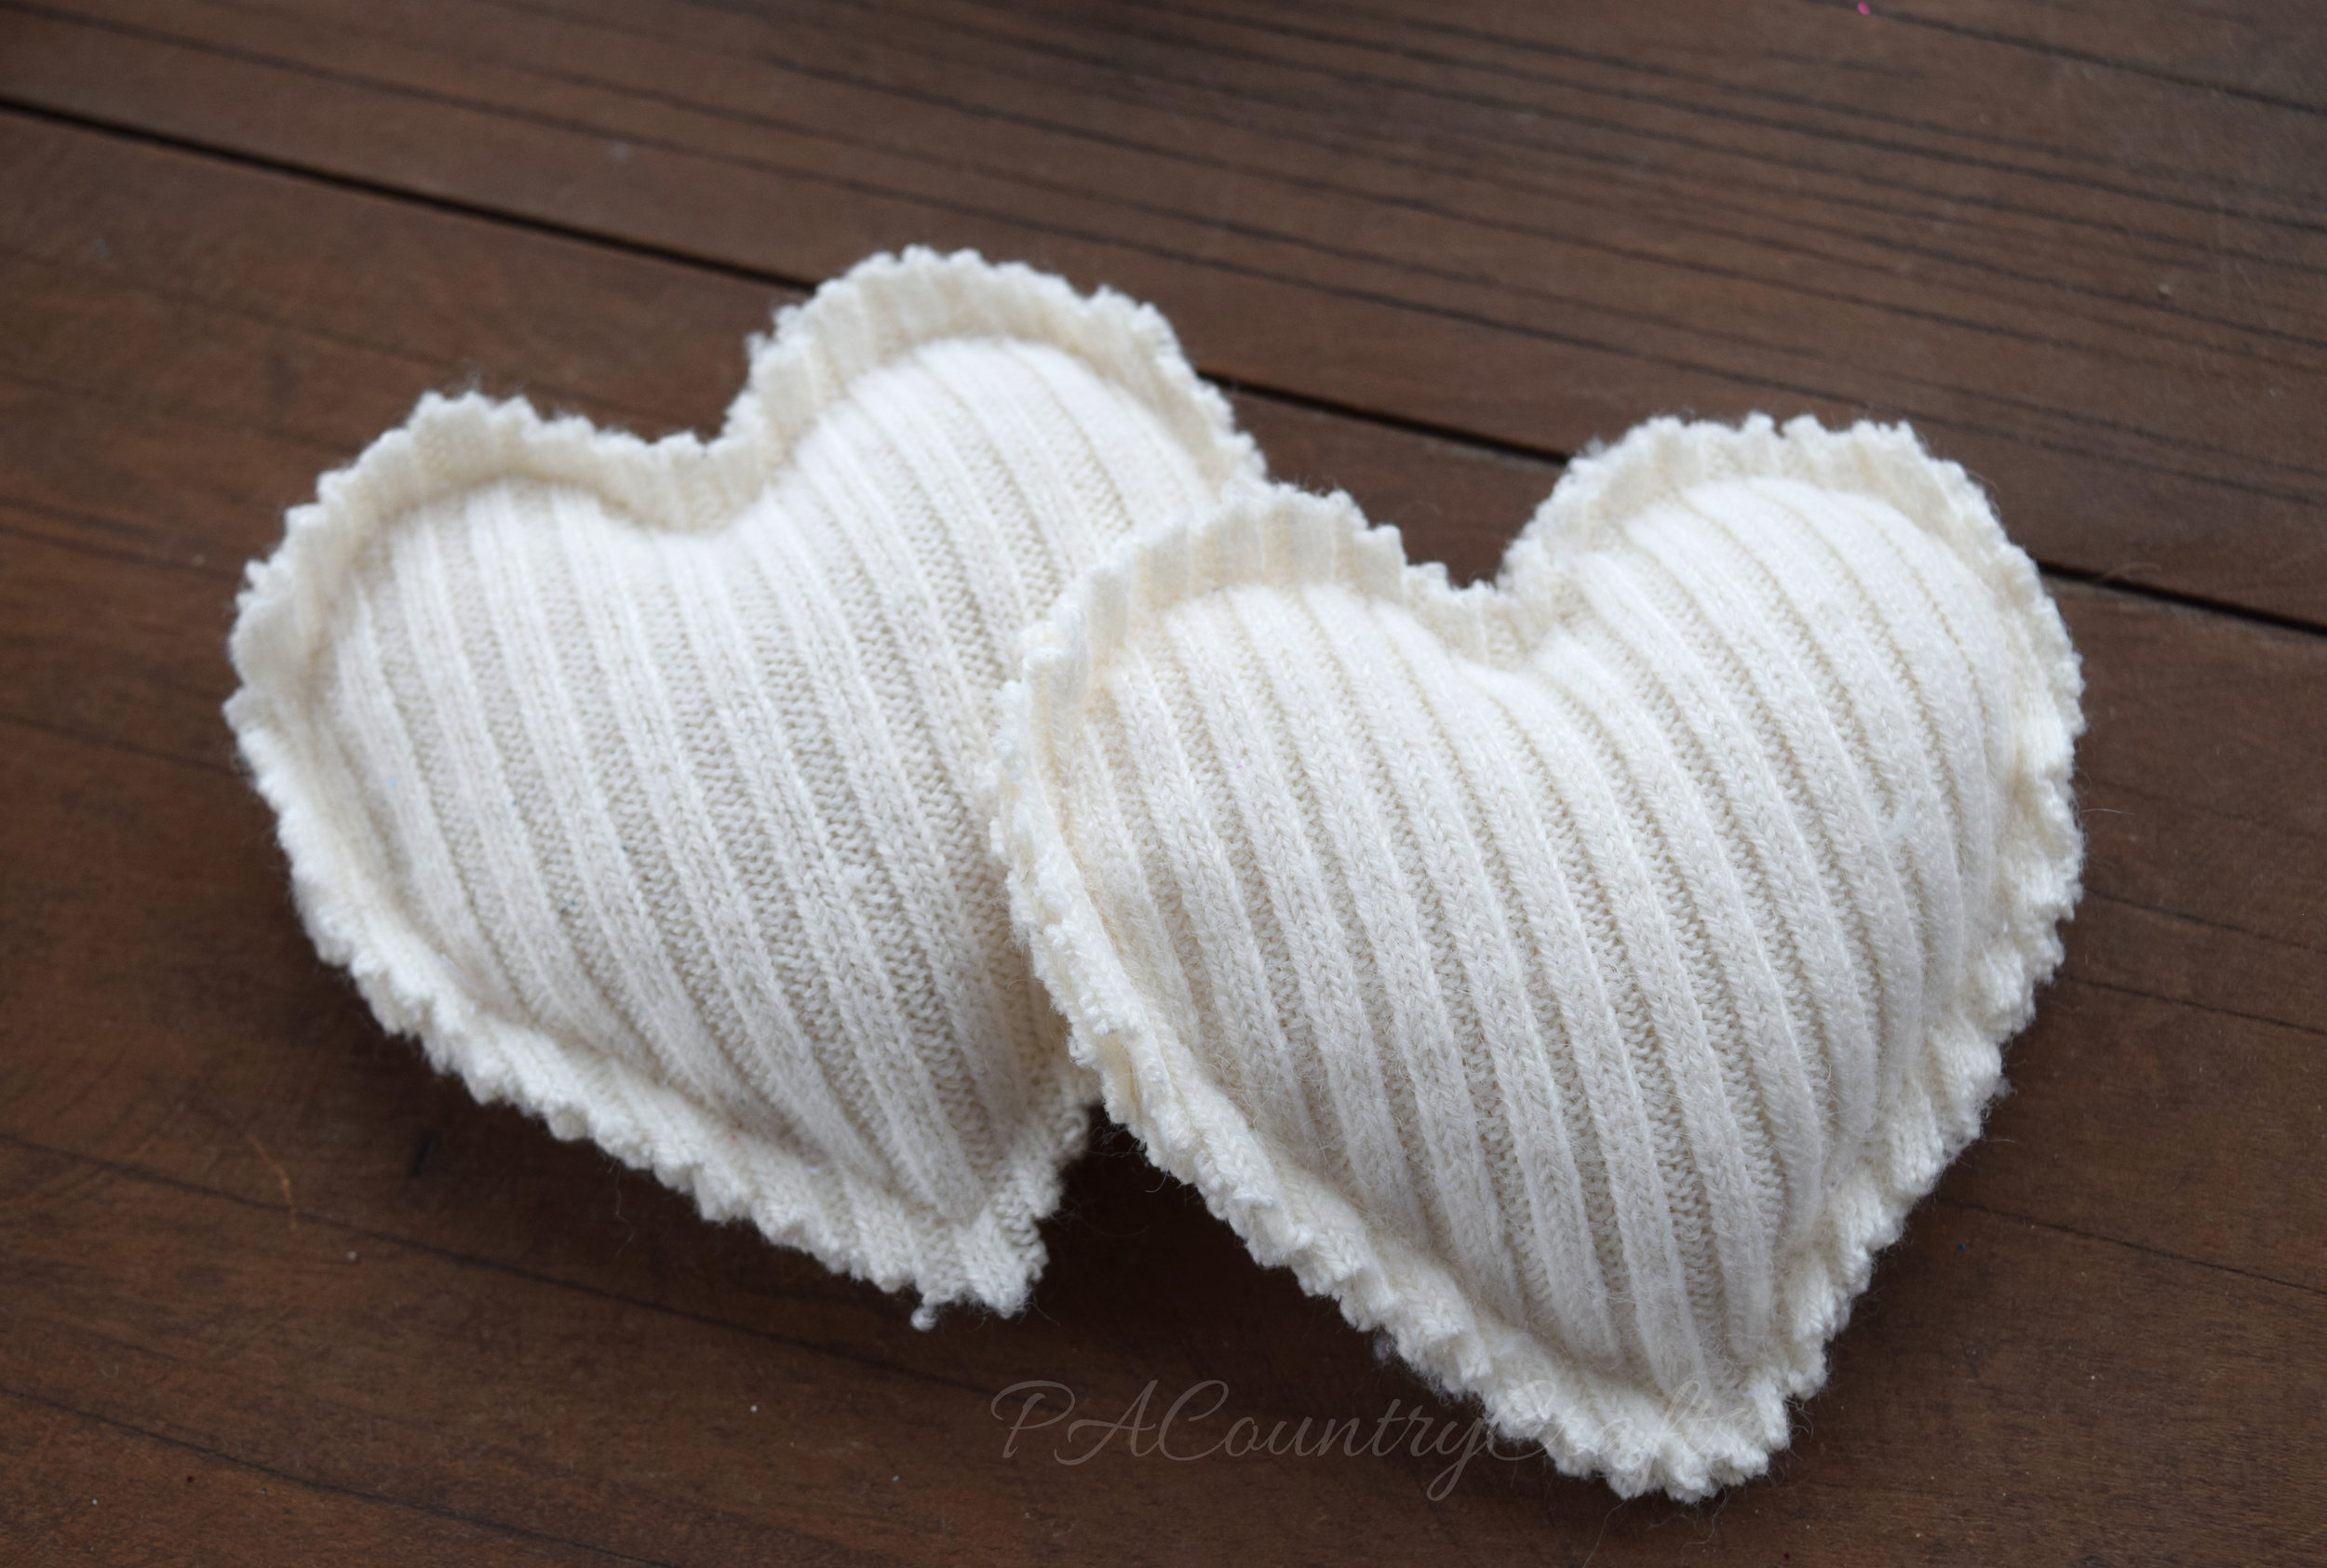 How to make hand warmers from old sweaters